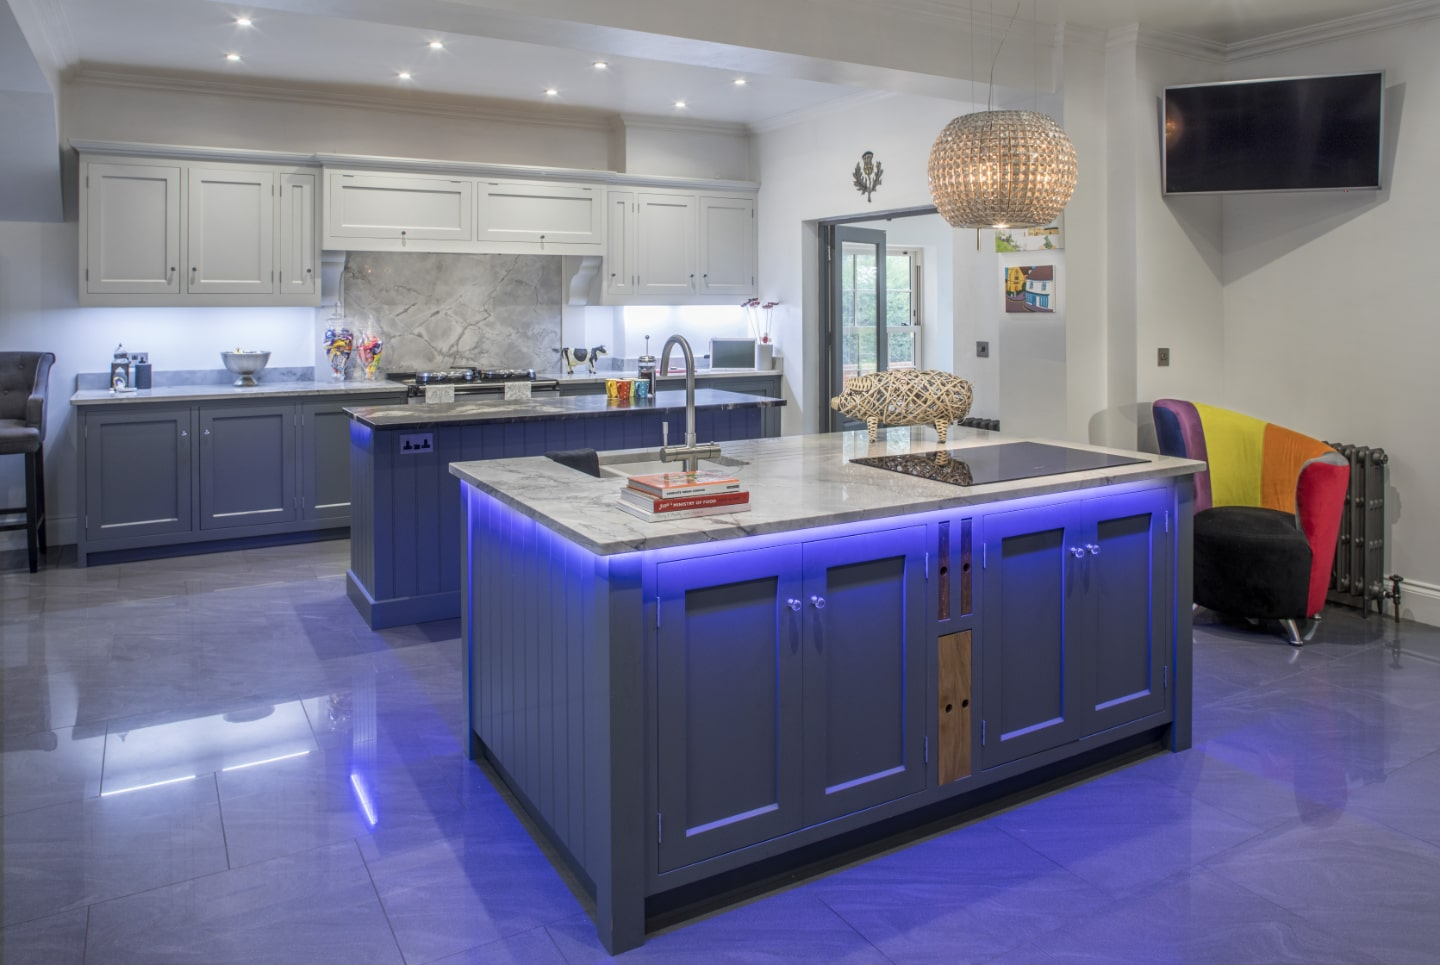 A bespoke kitchen with custom, blue LED lighting under the work tops.